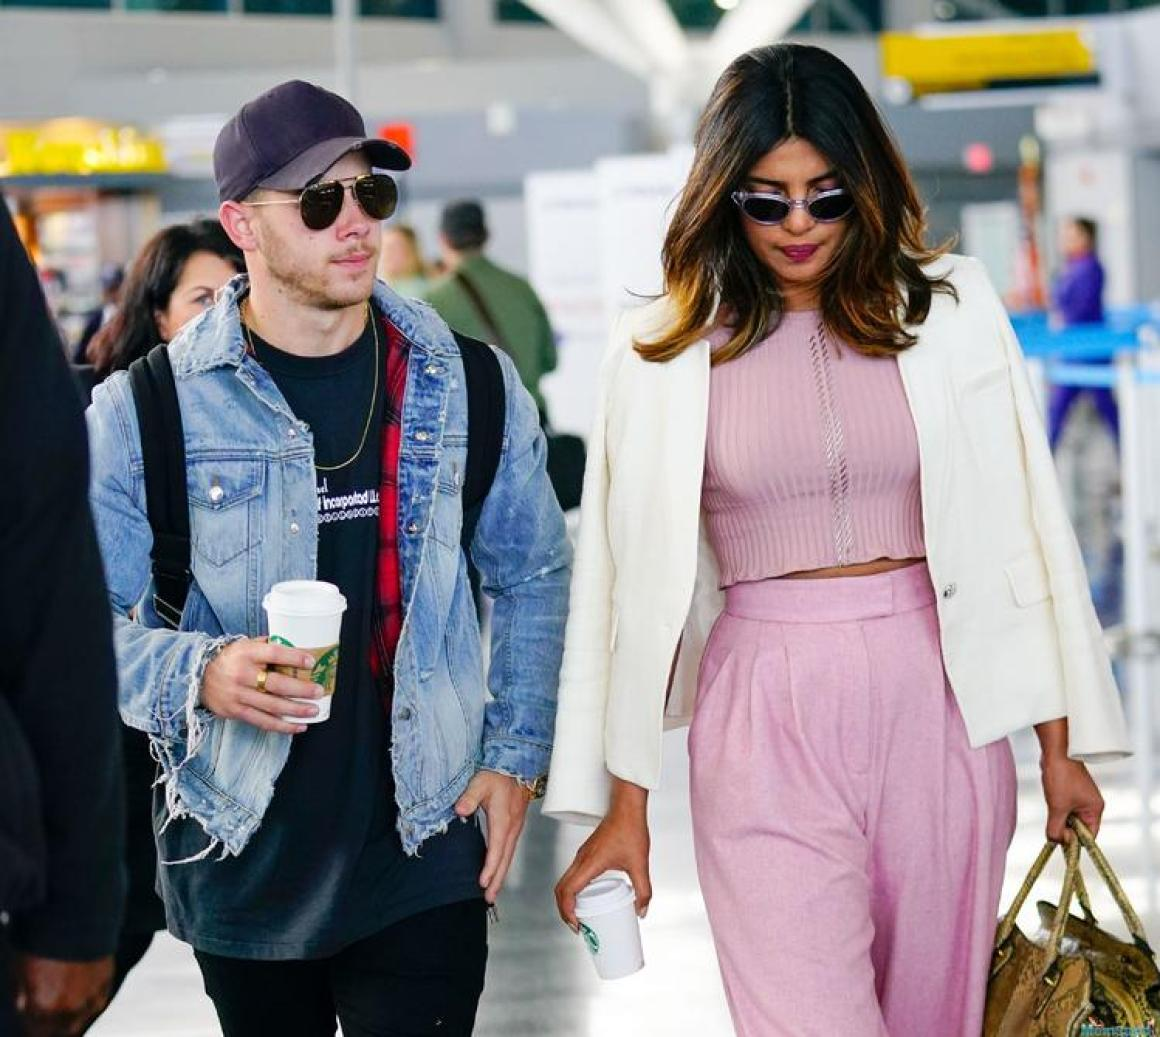 When Priyanka was asked to comment on the article, at an event in the capital on Wednesday, she took the high road by stating that it was